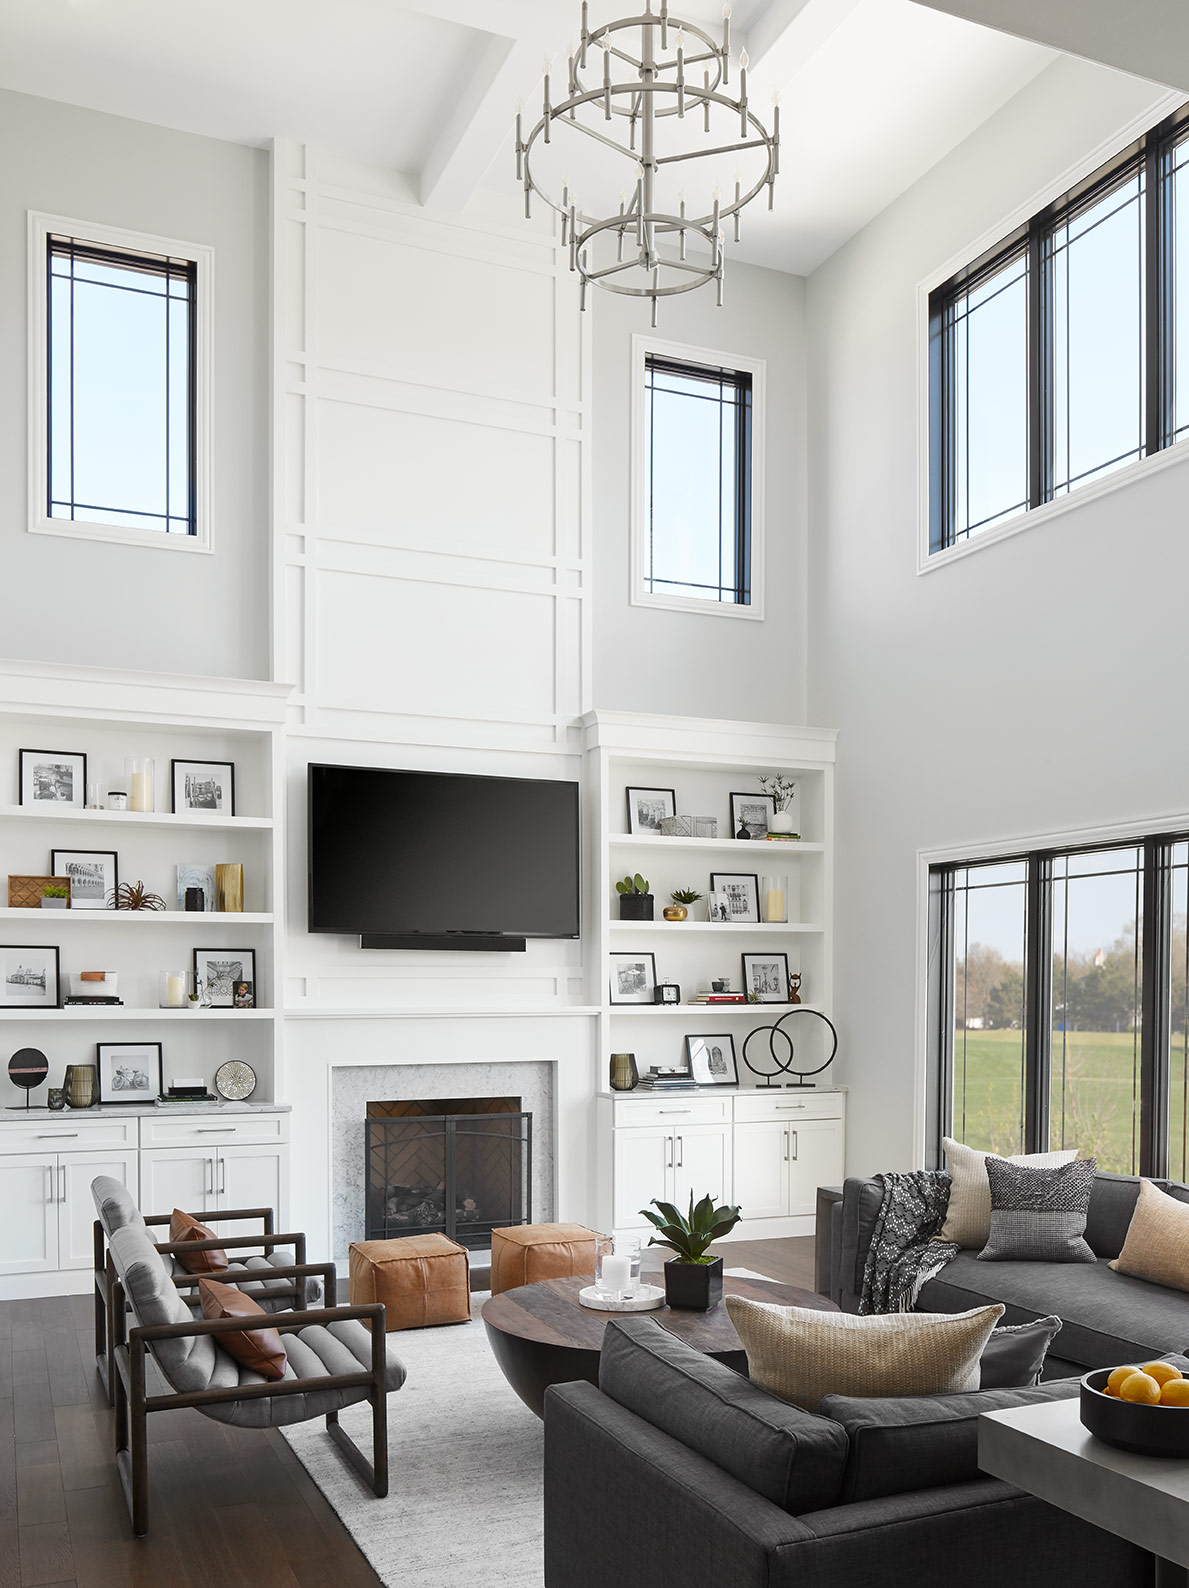 We flanked the fireplace with built-in cabinets and shelving, and carried paneling up the full double-height above the fireplace, mimicking the Prairie-style framing in the windows. The furniture creates a sophisticated area for entertaining while providing a comfortable place for the family to relax in.